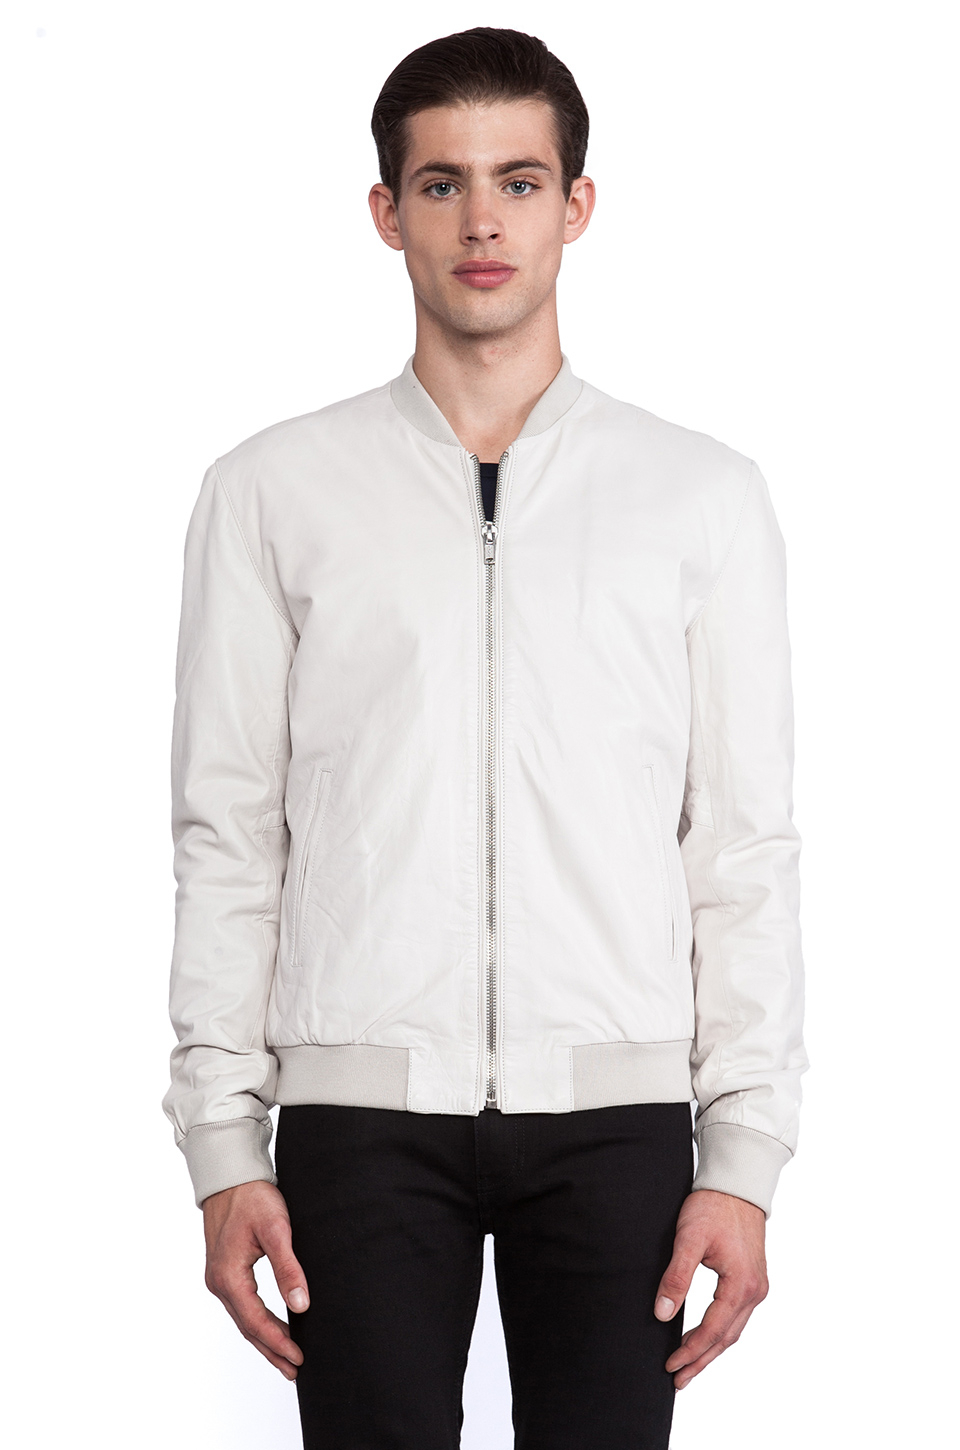 Blk dnm Leather Jacket 81 in White for Men | Lyst